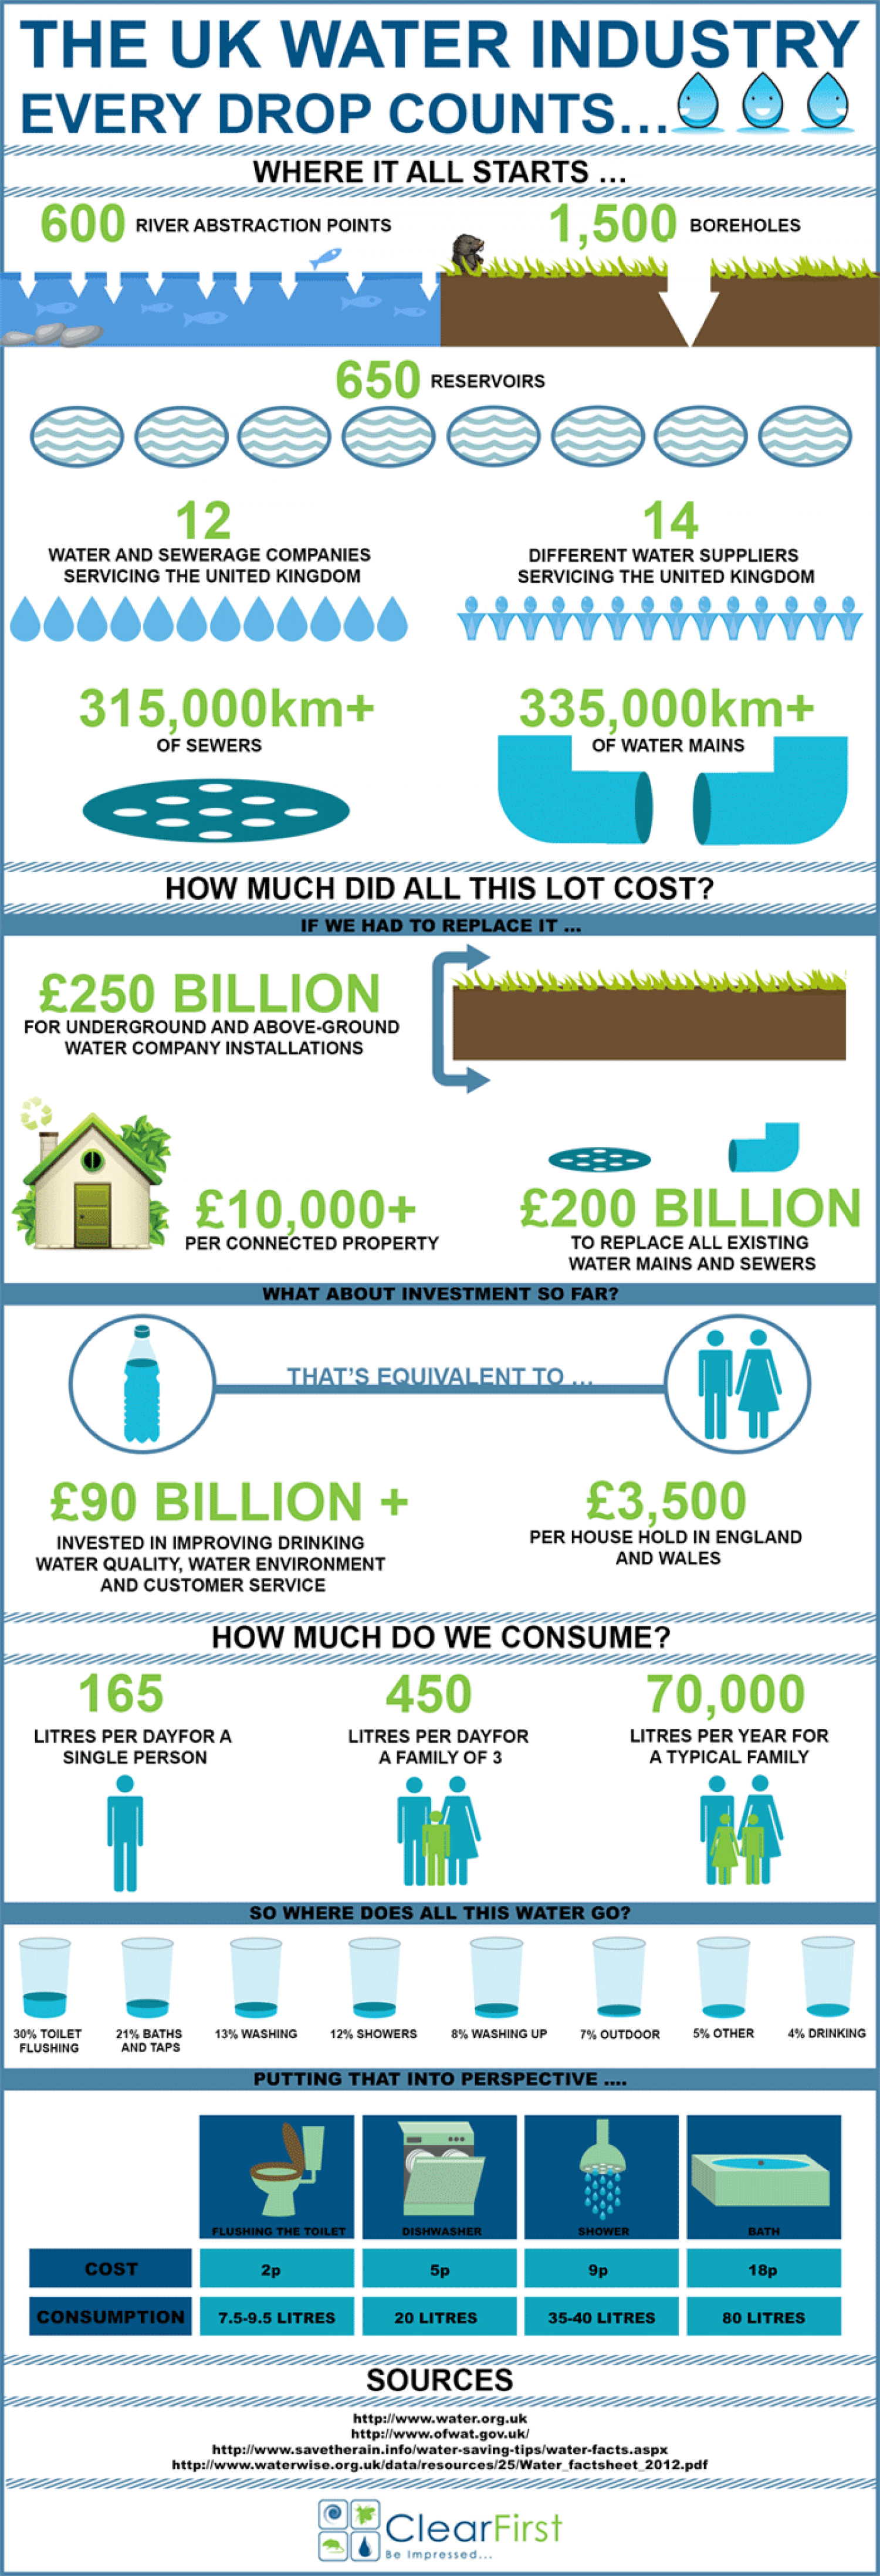 The UK Water Industry – Every Drop Counts Infographic